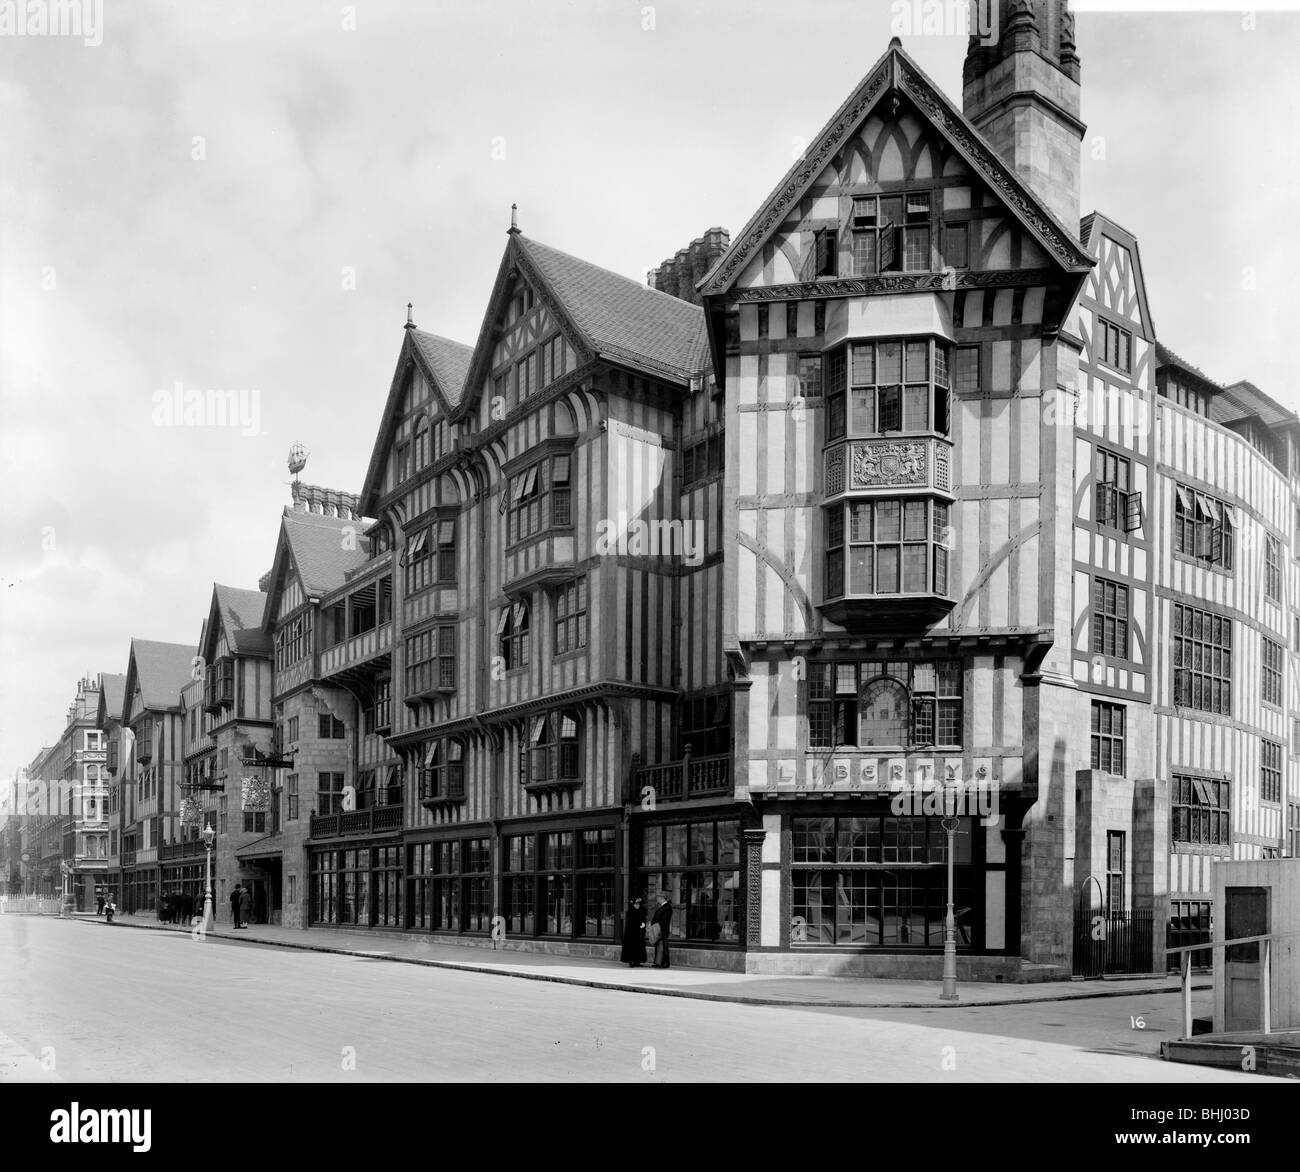 Liberty, the Arts and Crafts Tudor-style shop in Great Marlborough Street, London, 1924. Artist: Bedford Lemere - Stock Image